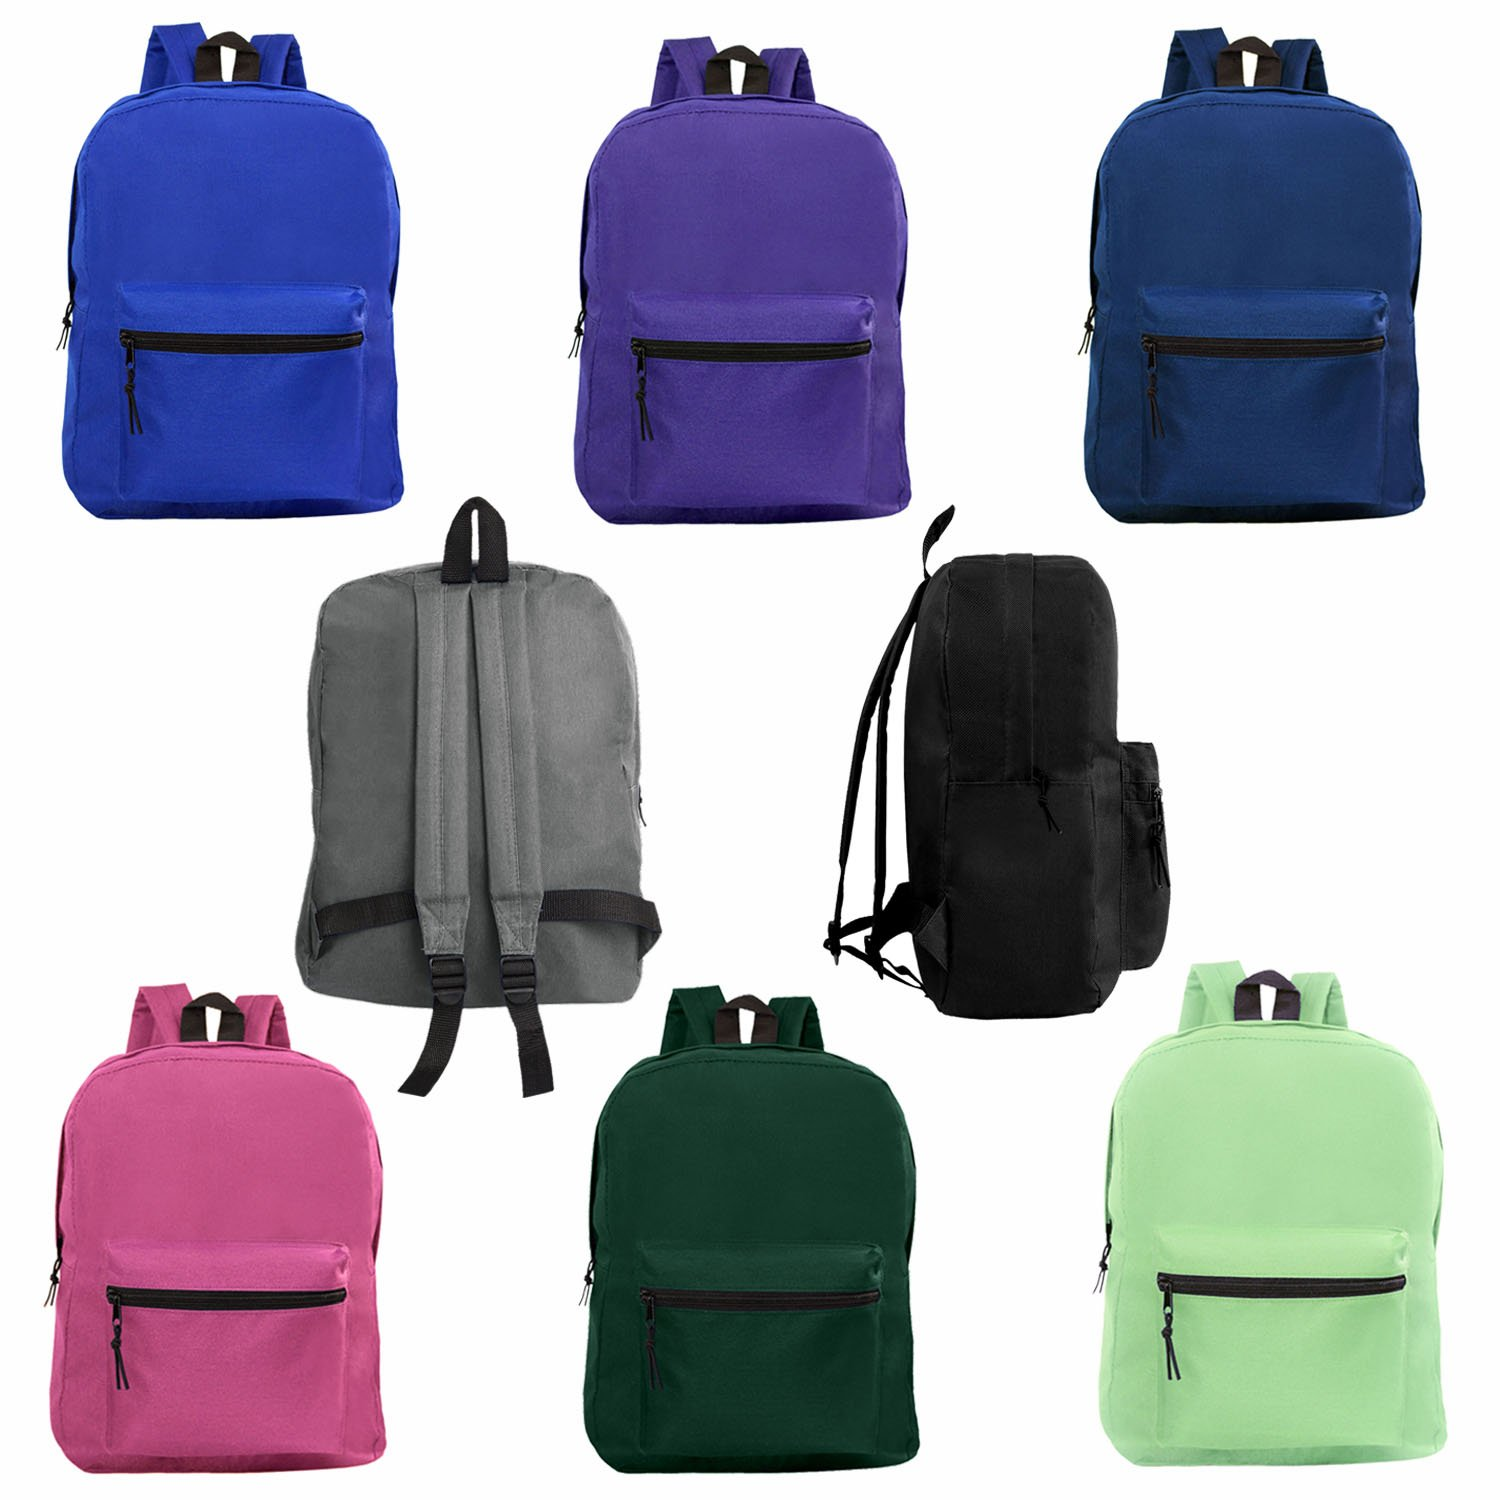 Wholesale 15 Inch Classic Backpacks for Students - Bulk Case of 24 Bookbags - 8 Assorted Colors